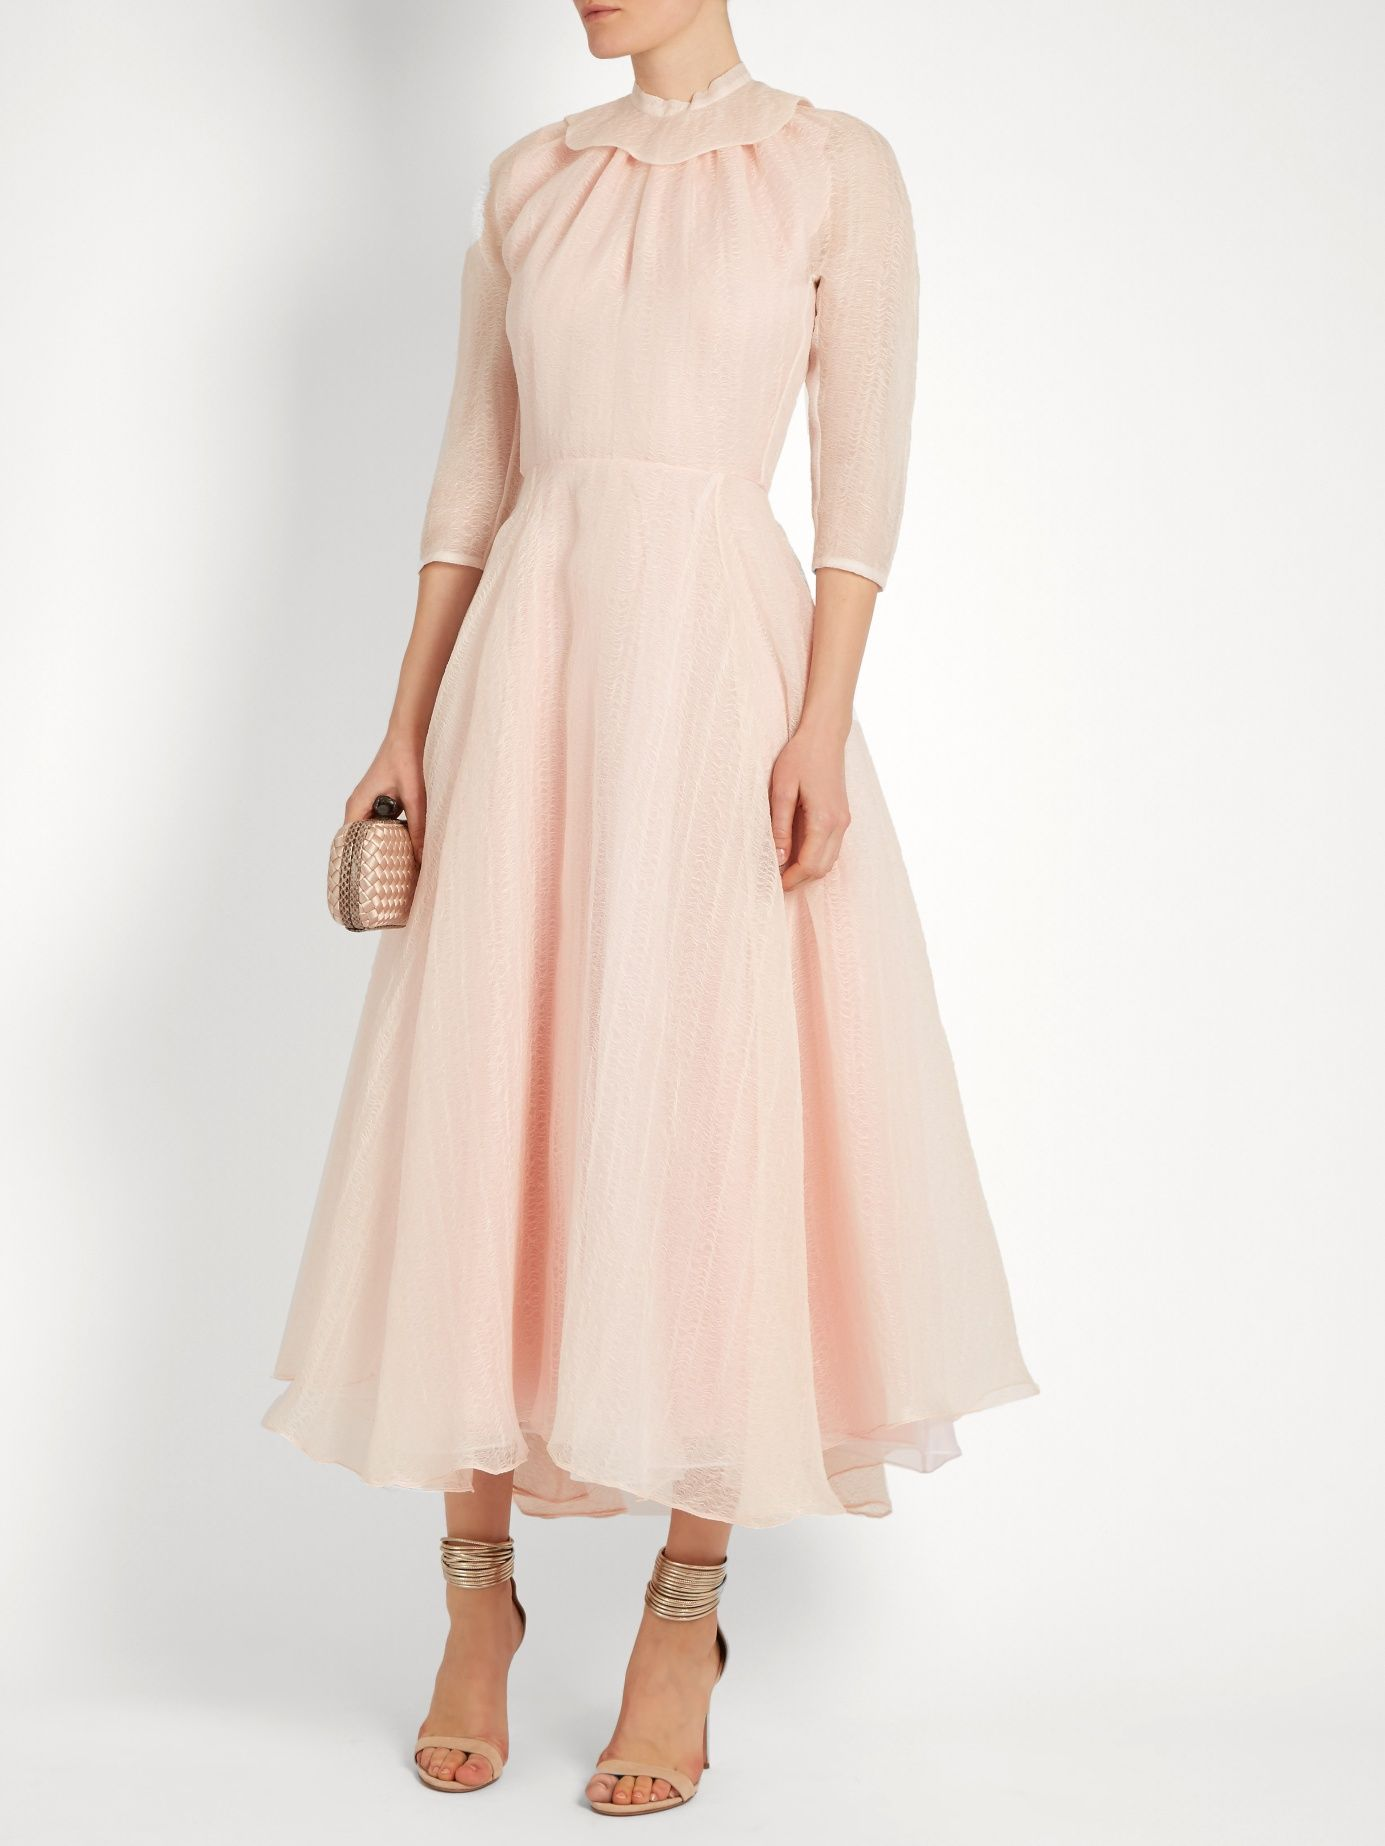 Hera Ruffled Organza A Line Dress Emilia Wickstead